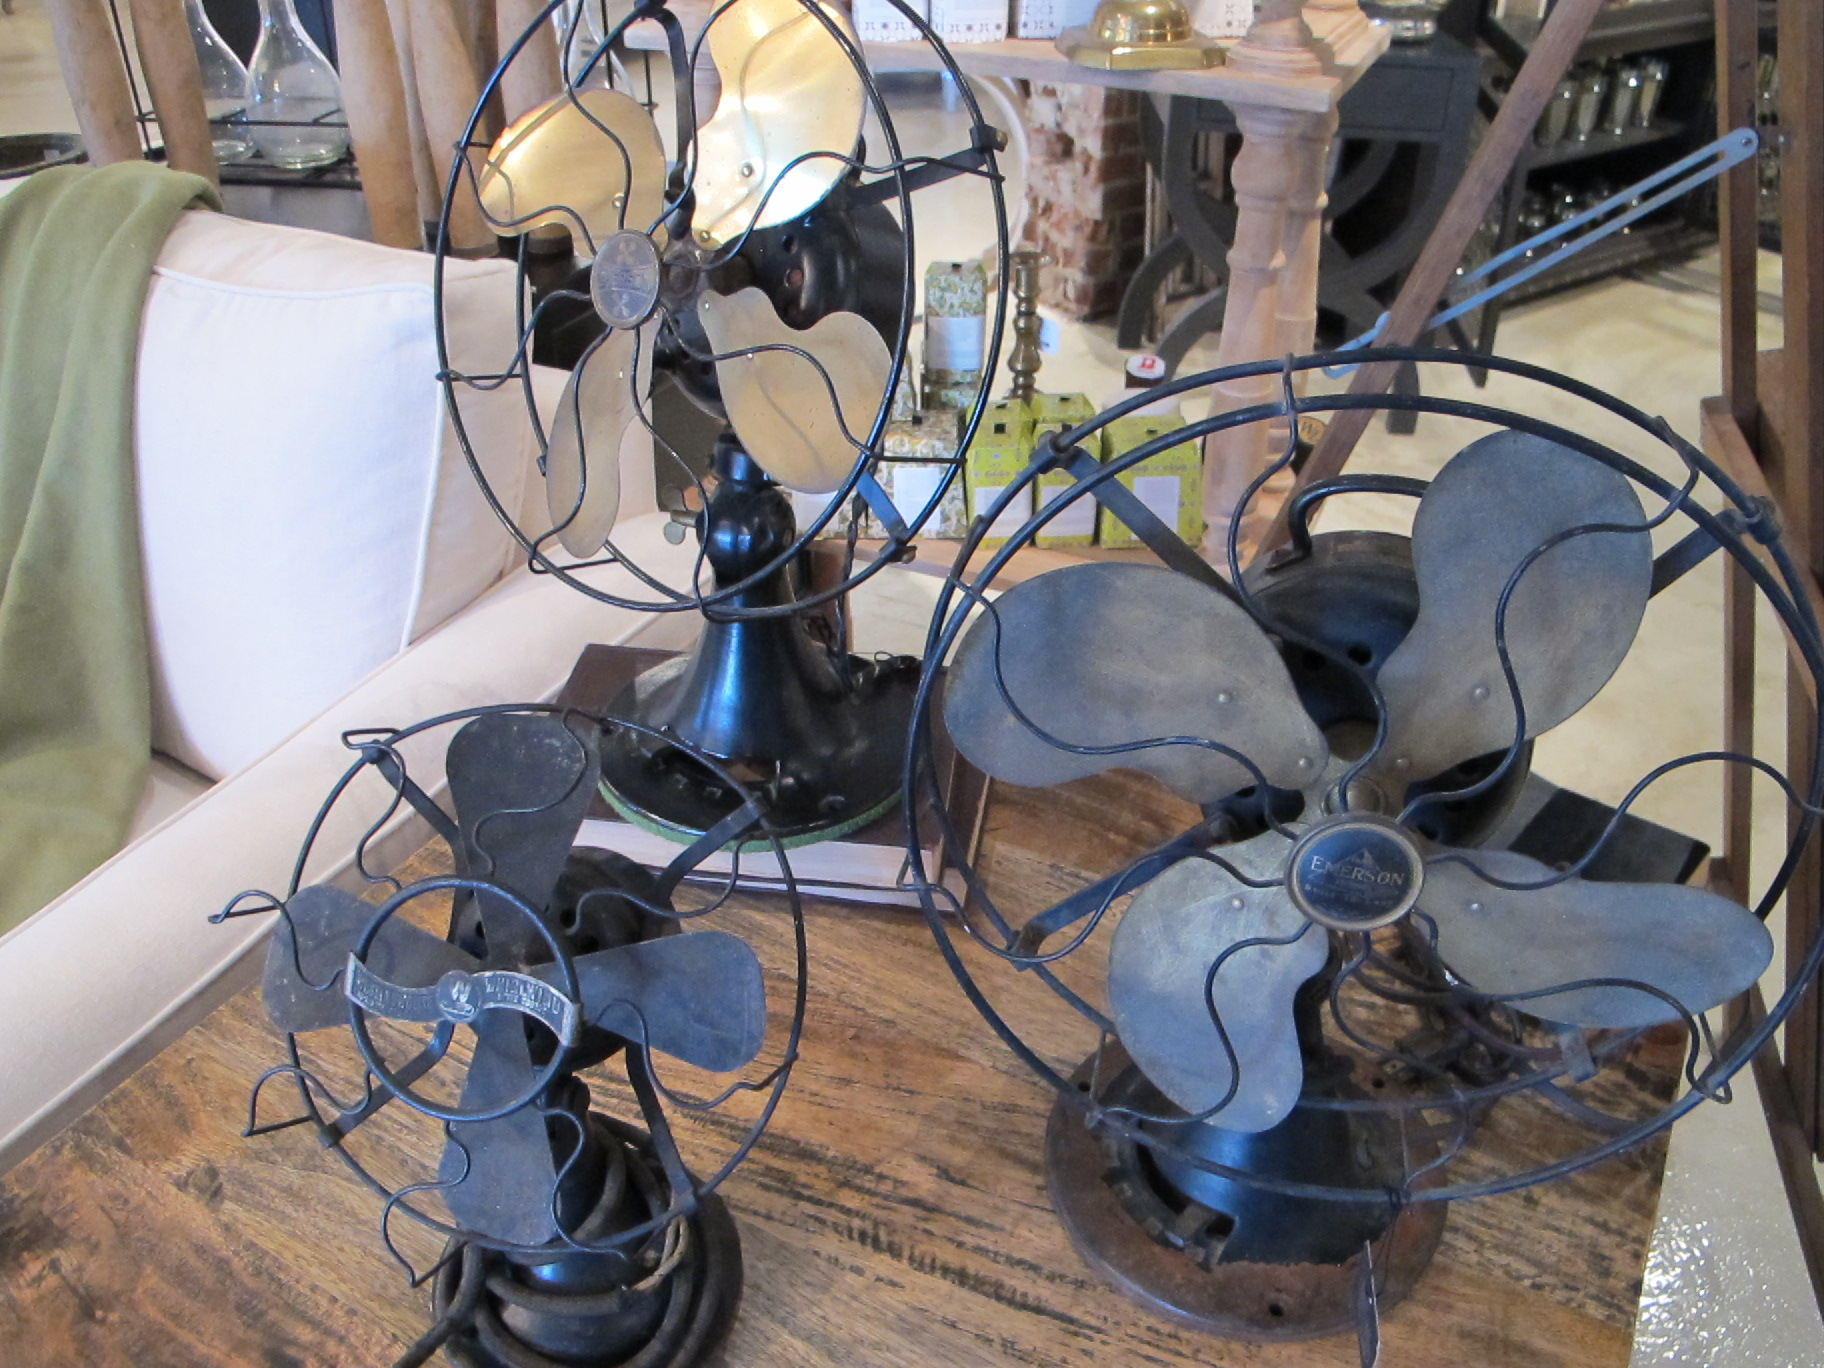 Ceiling fans fans and ceilings on pinterest for Repurpose ceiling fan motor